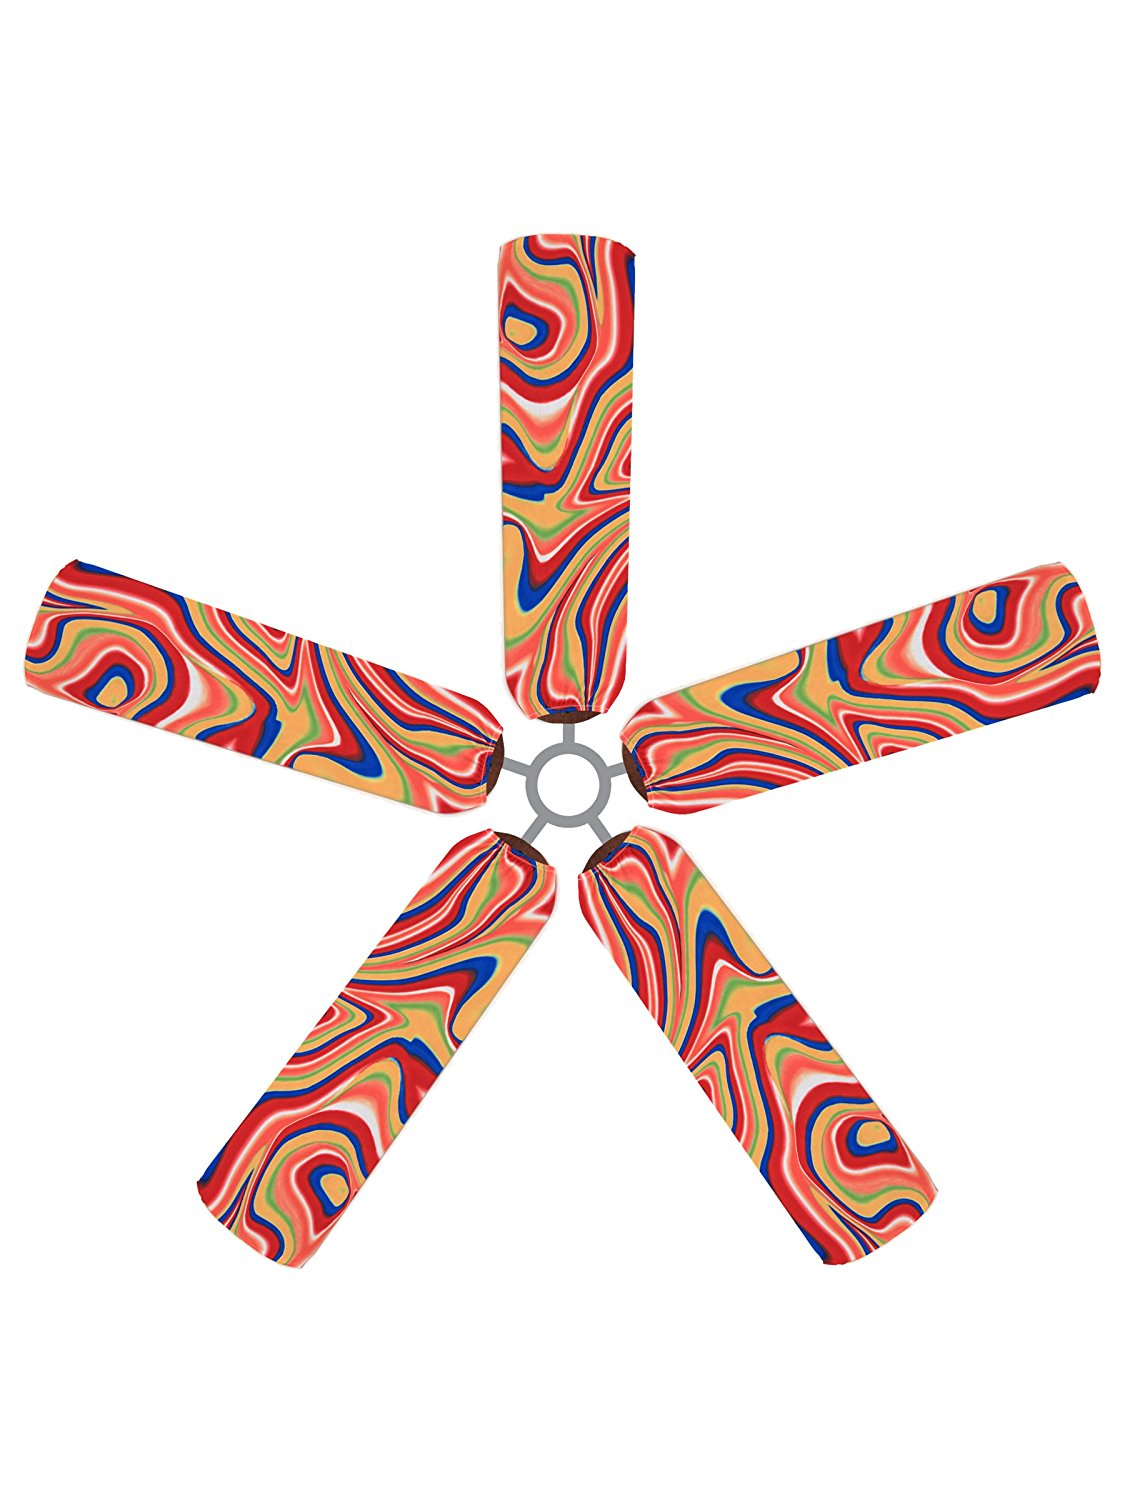 Fan Blade Designs DZ-1DGL-HUSZ Ceiling Fan Blade Covers, Swirling Rainbow